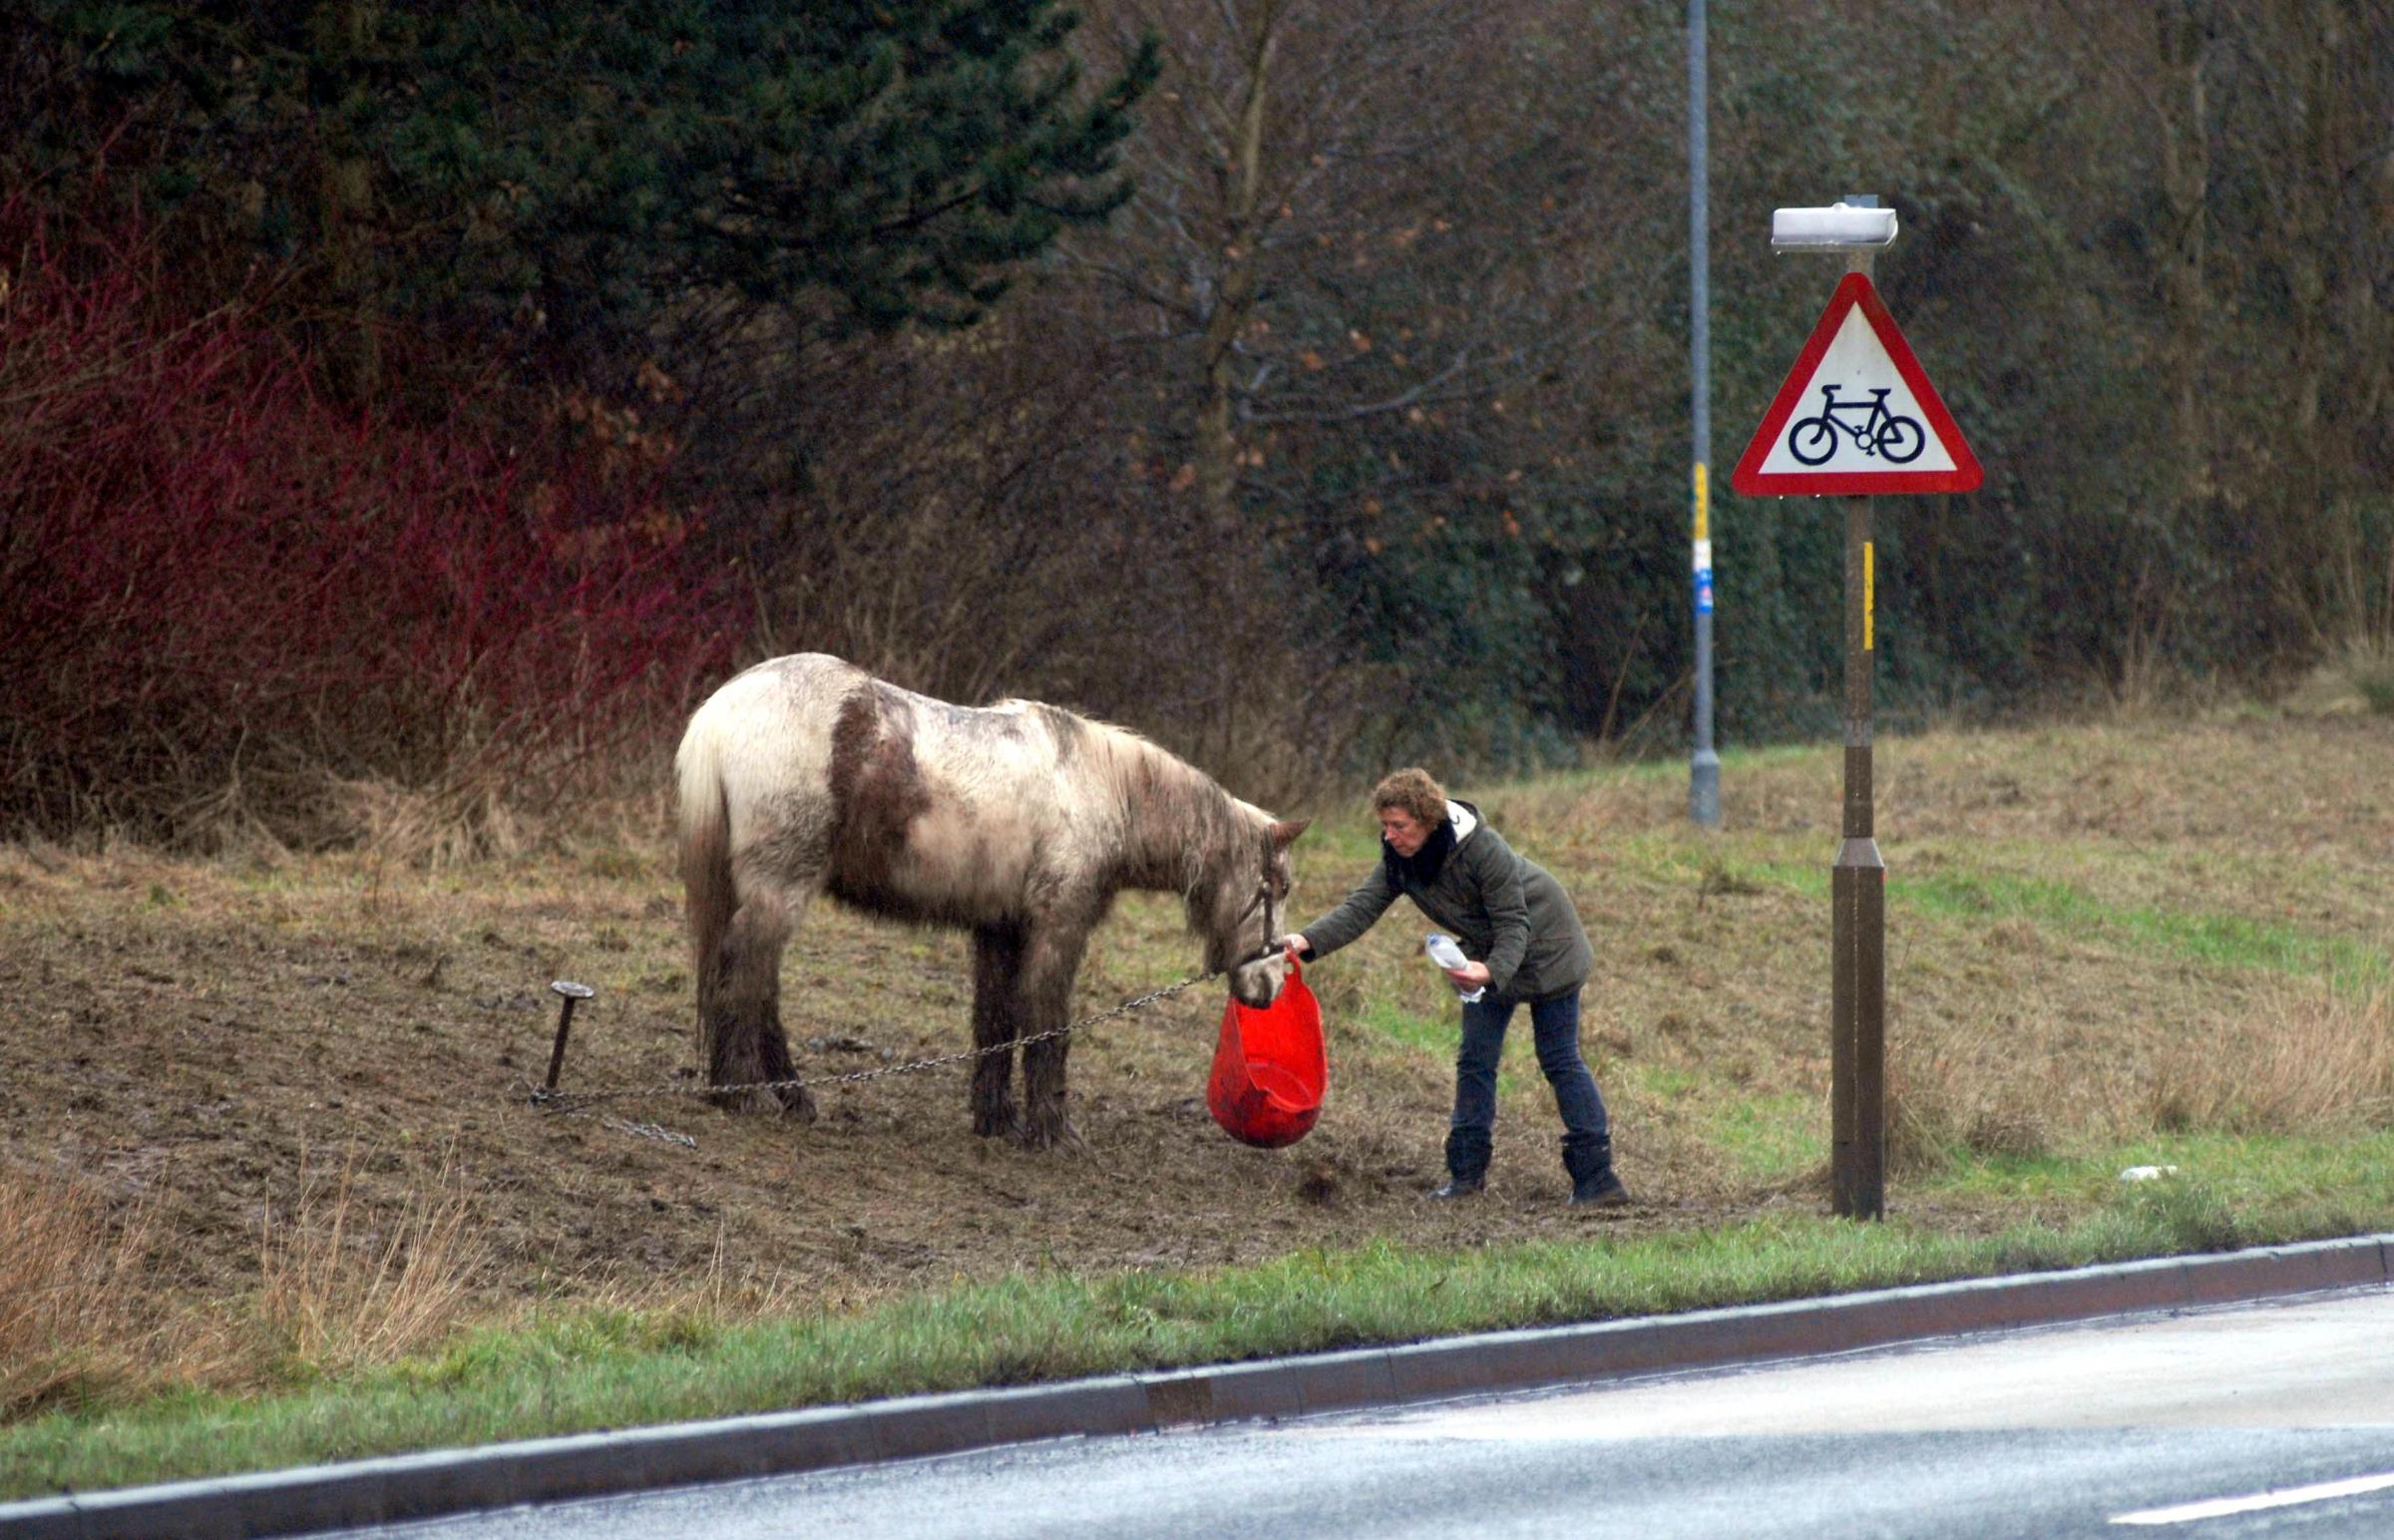 Horses are not abandoned in the mud says traveller who owns them